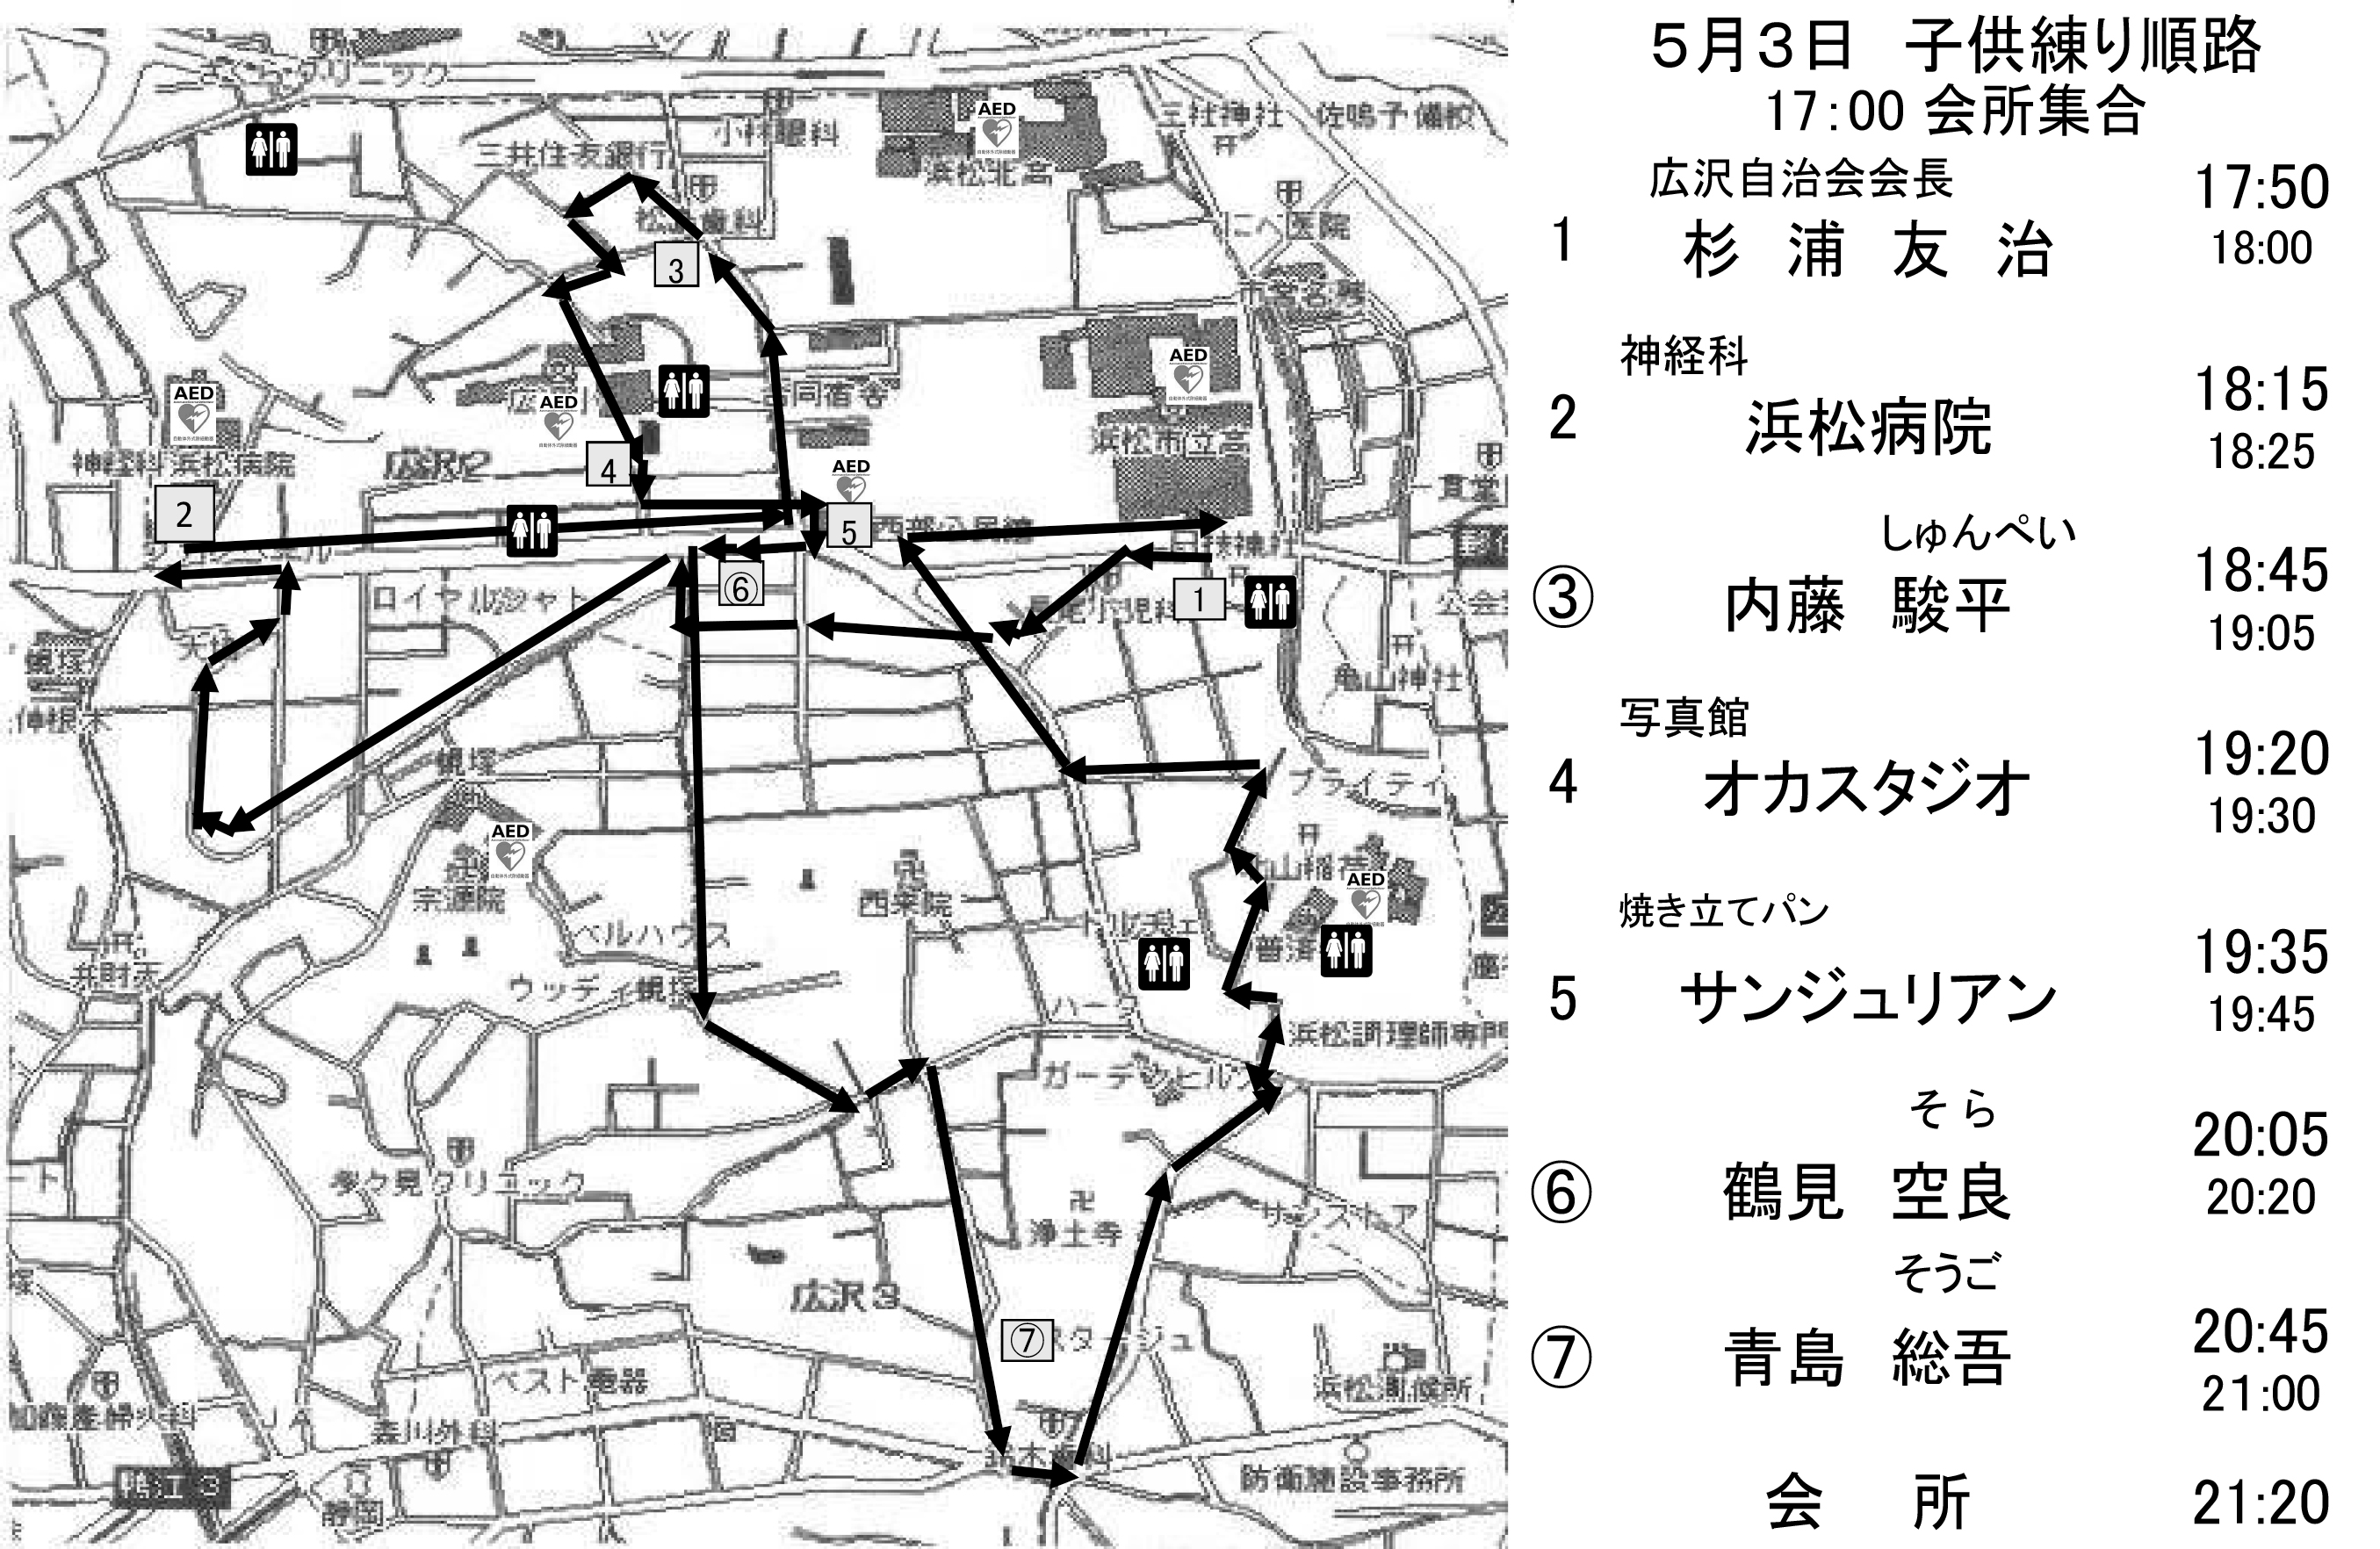 平成29年 子練り順路(地図・時間)